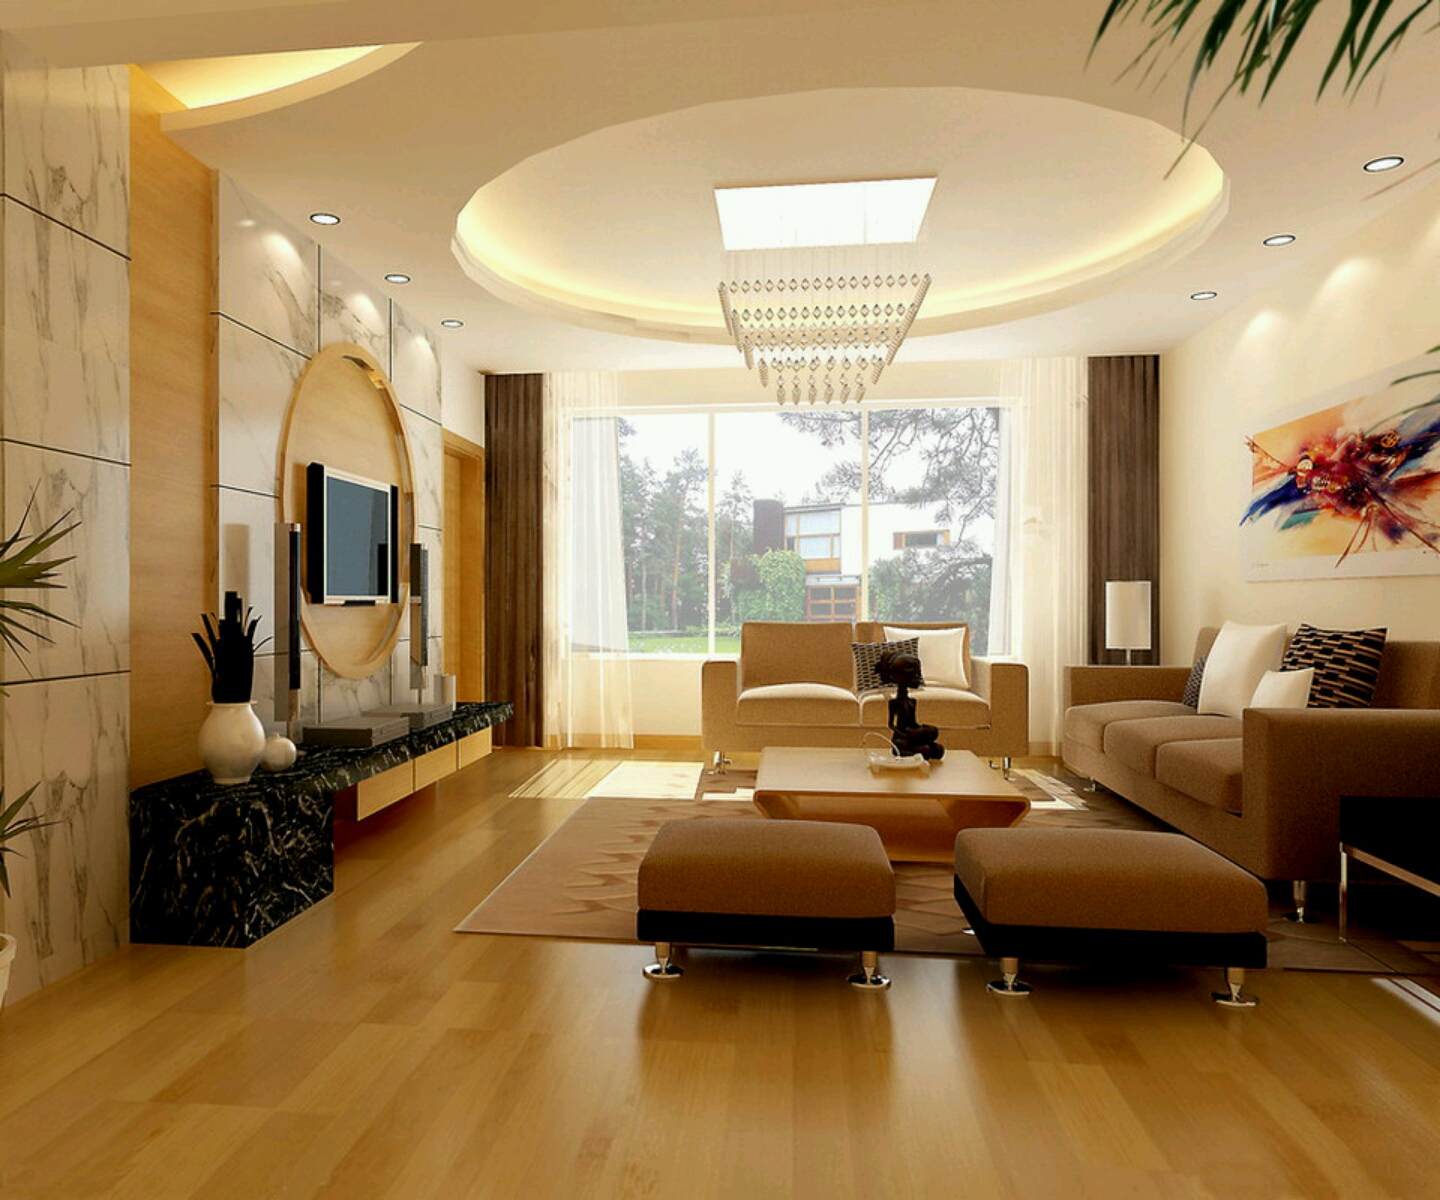 Ceiling Decorating Ideas